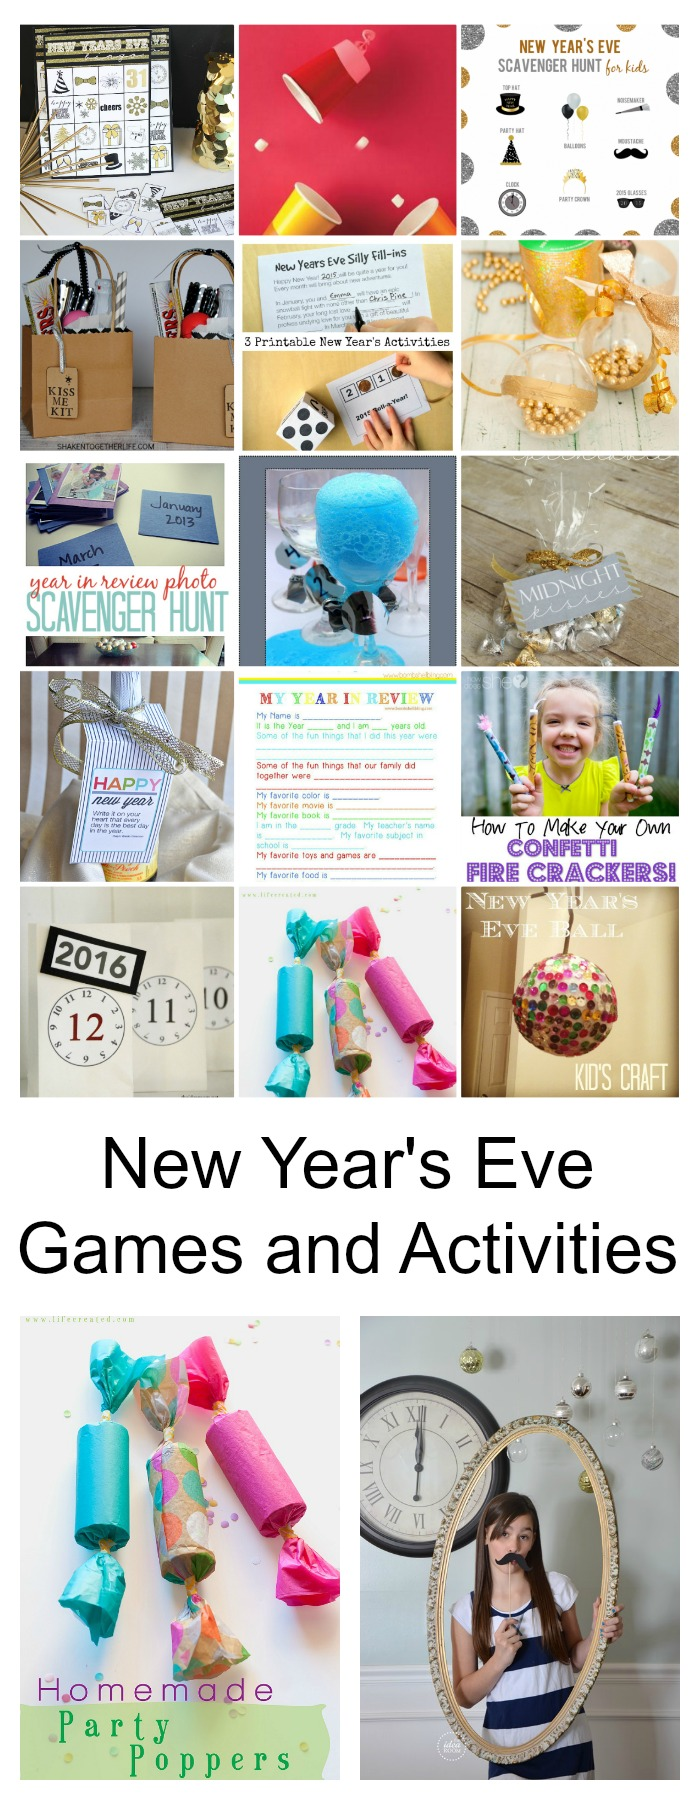 New-Years-Eve-Games-Activities.jpg1